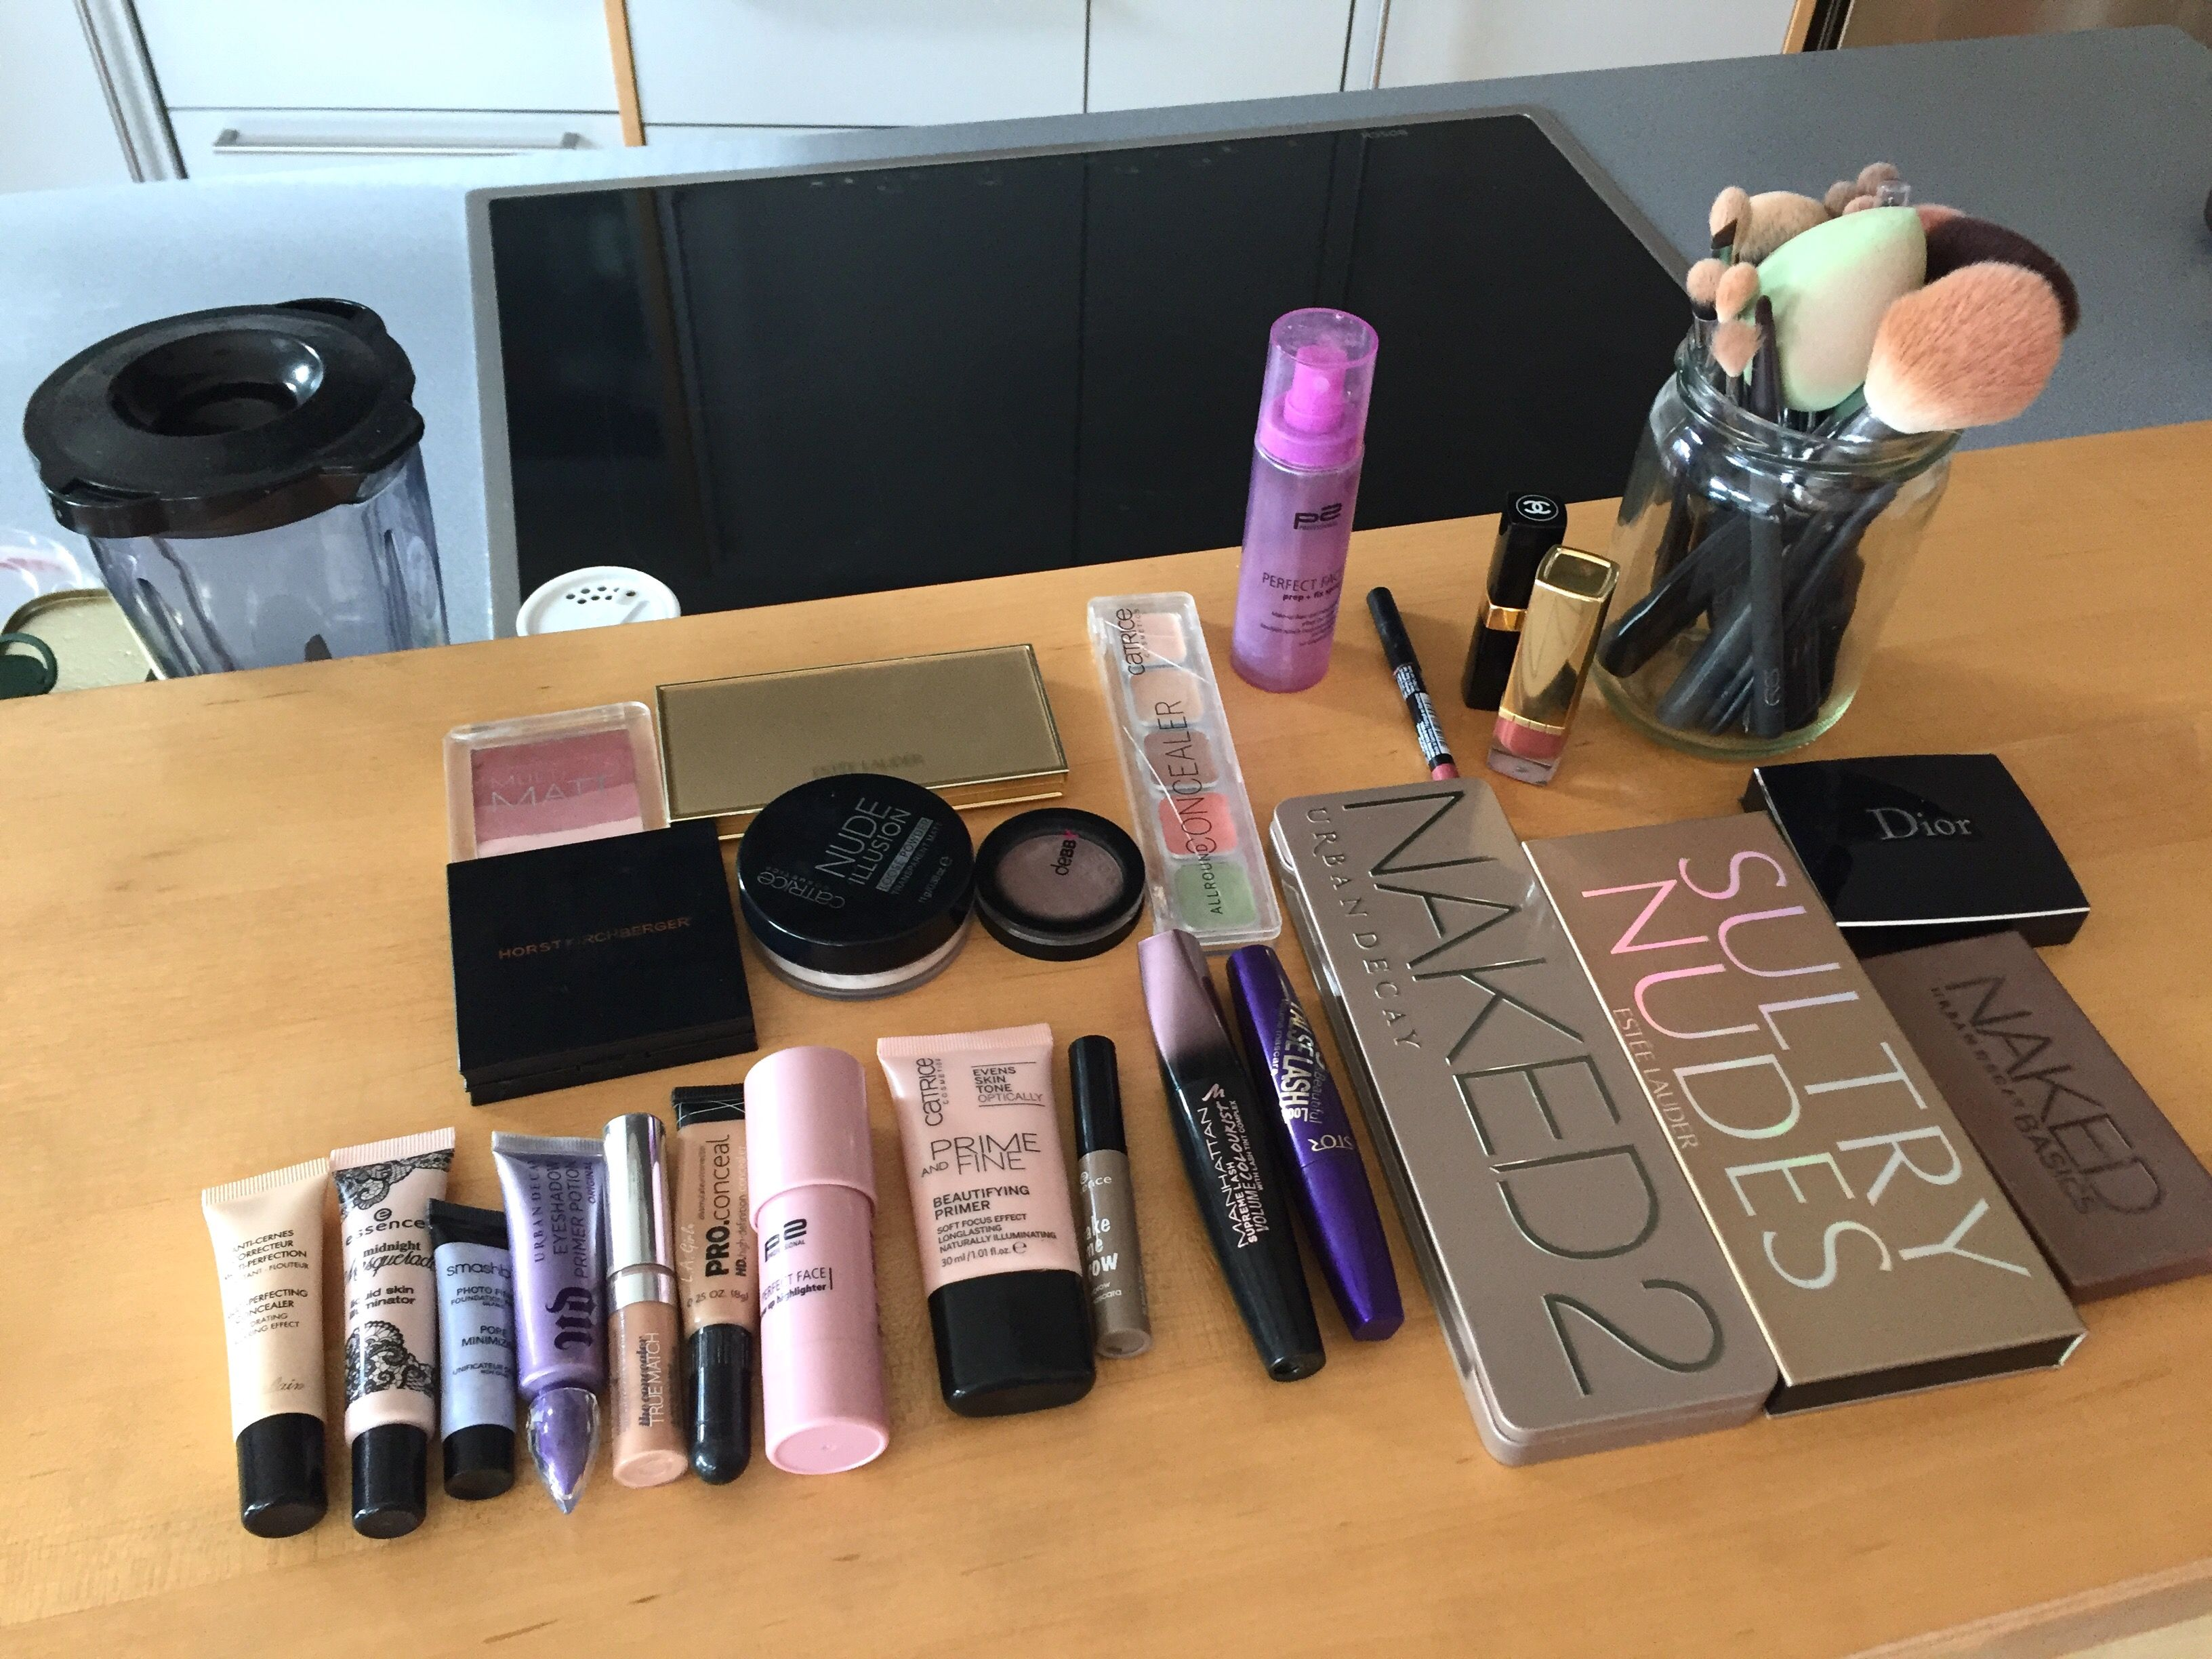 Some of my own make-up